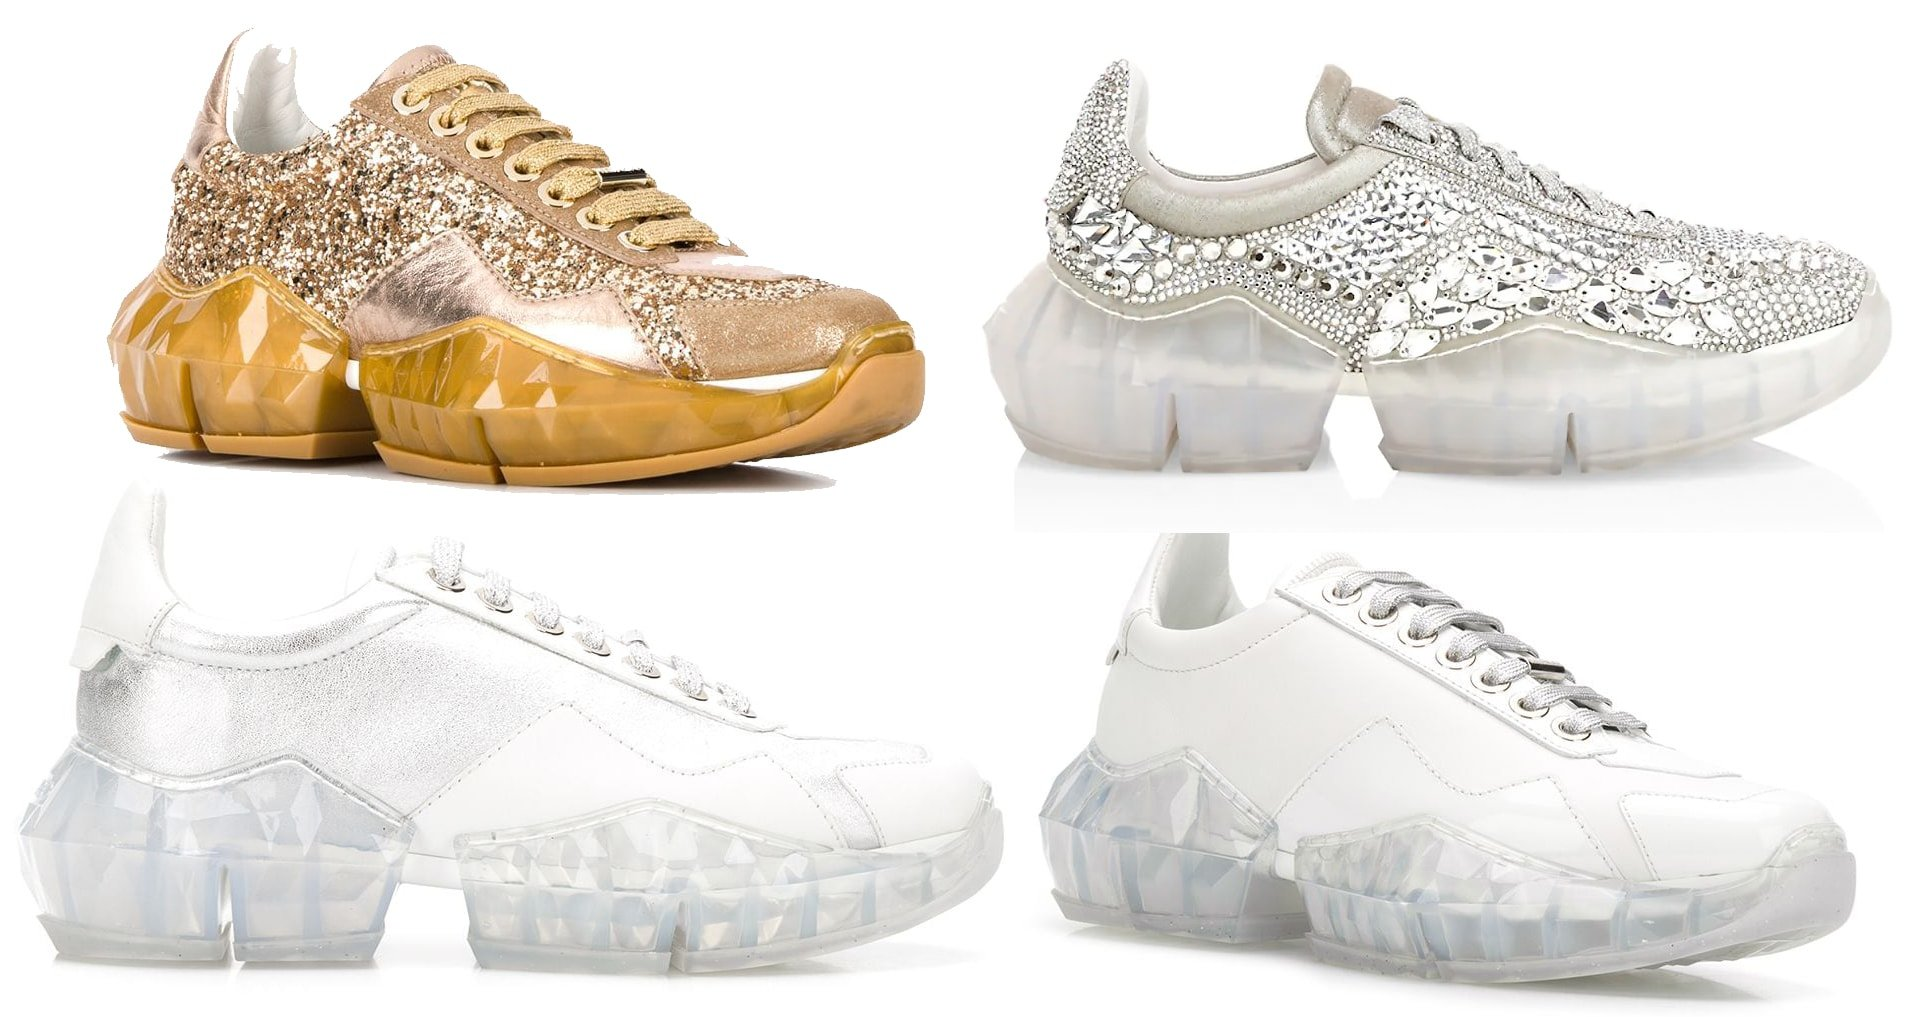 The Diamond sneakers take their name from the chunky molded diamond thermoplastic polyurethane sole